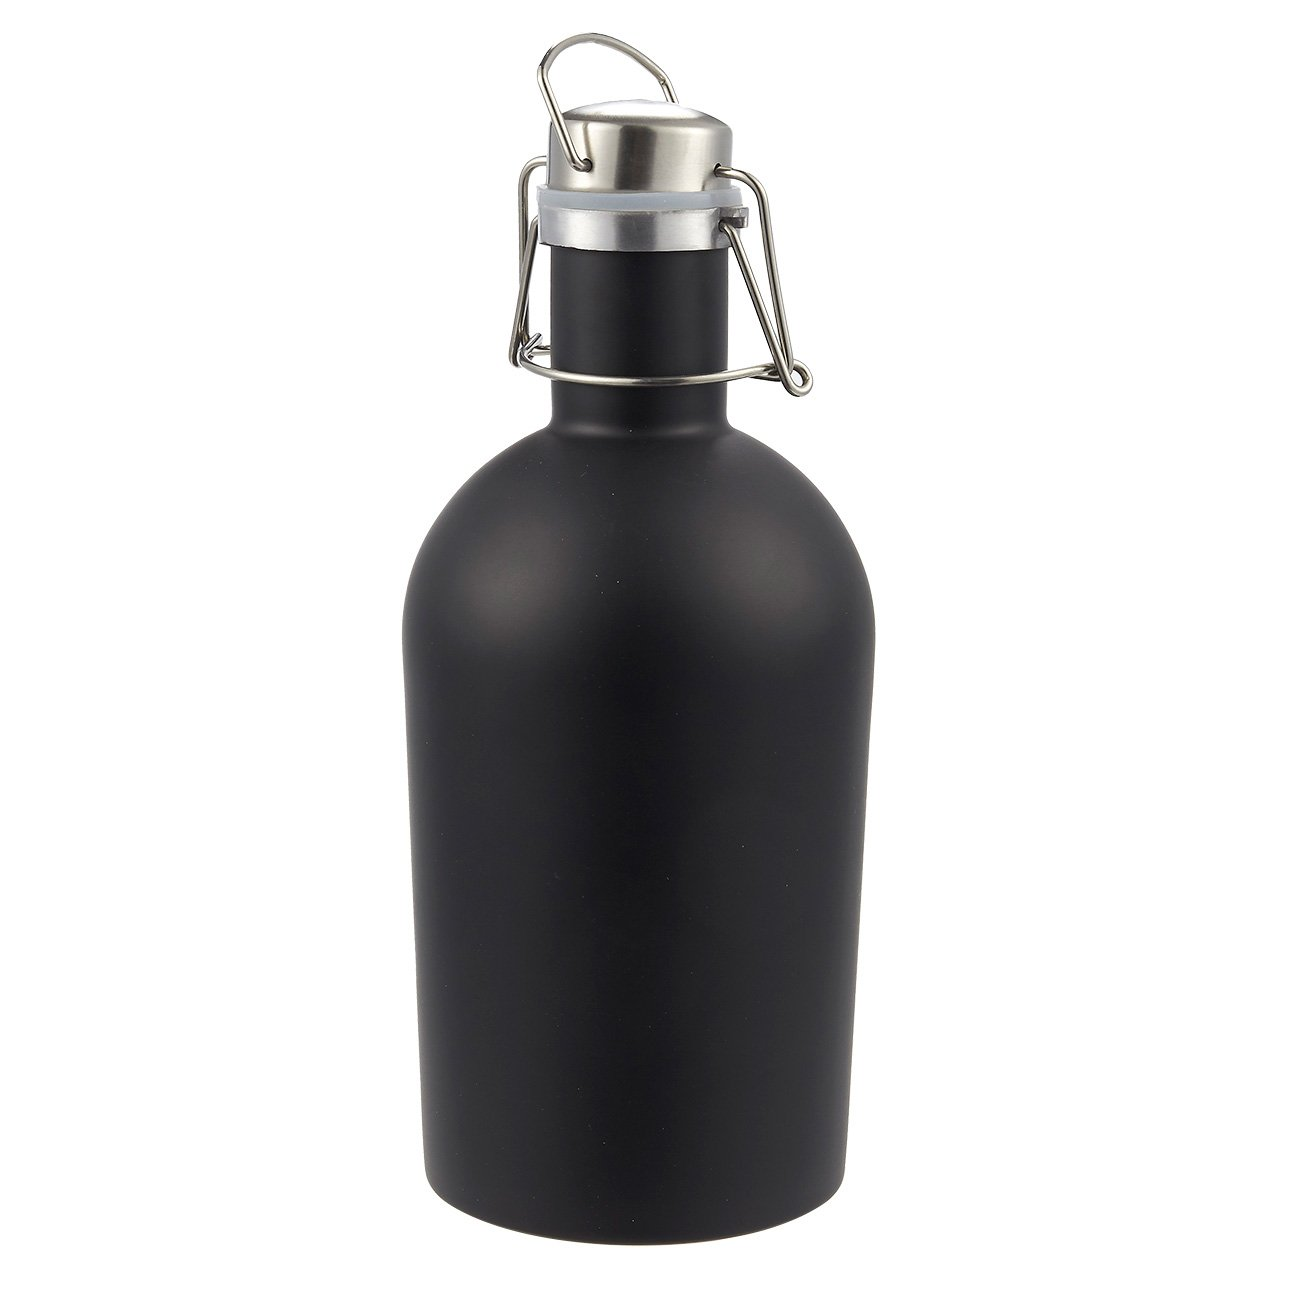 Juvale Beer Growler - Stainless Steel Water Bottle Growler for Travel, Camping, and Tailgate Parties, Black, 64 Ounces